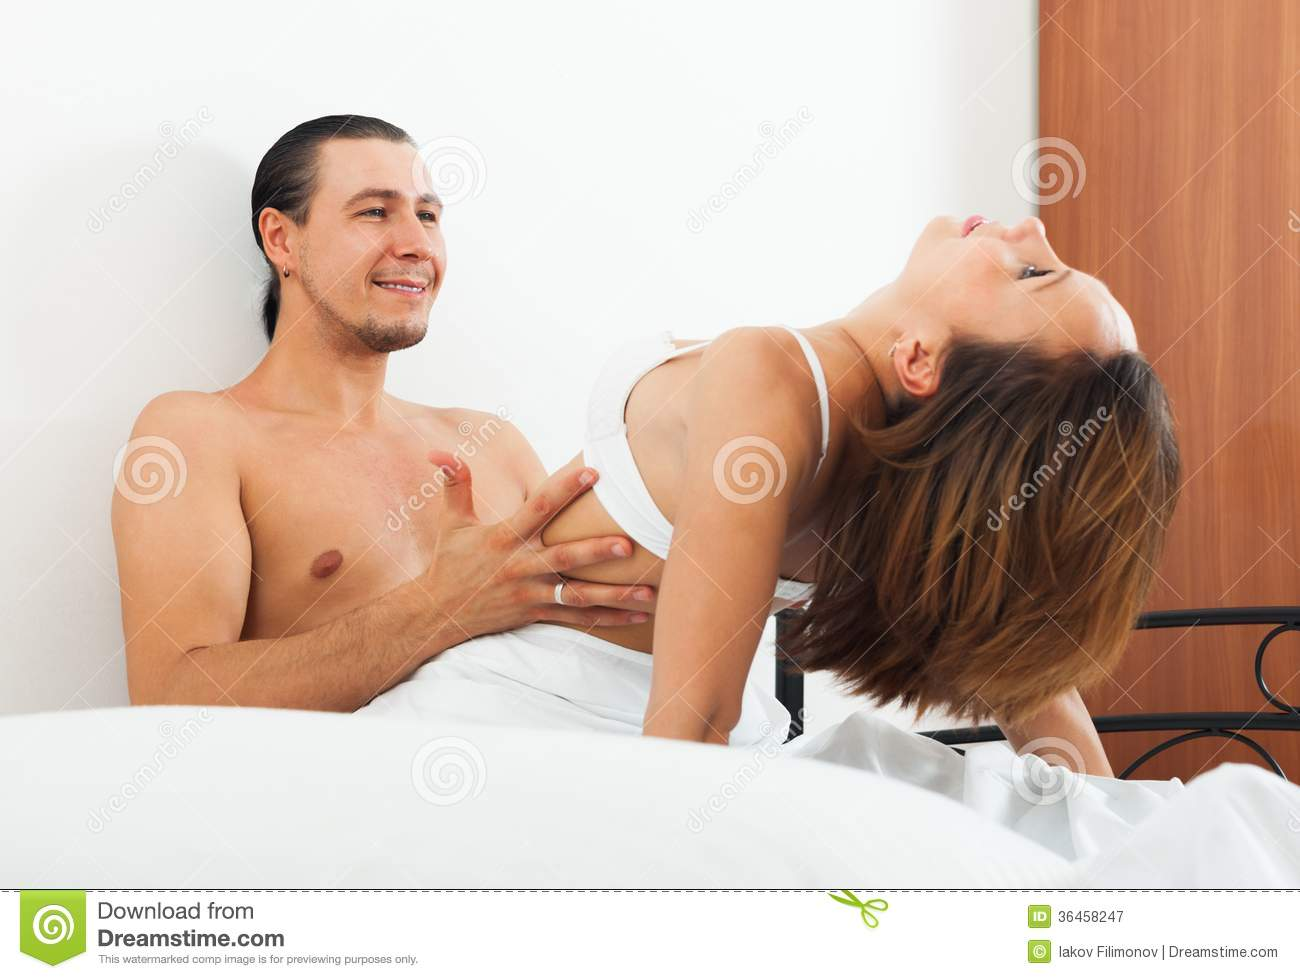 Ordinary Couple Having Sex Royalty Free Stock Photography -6884